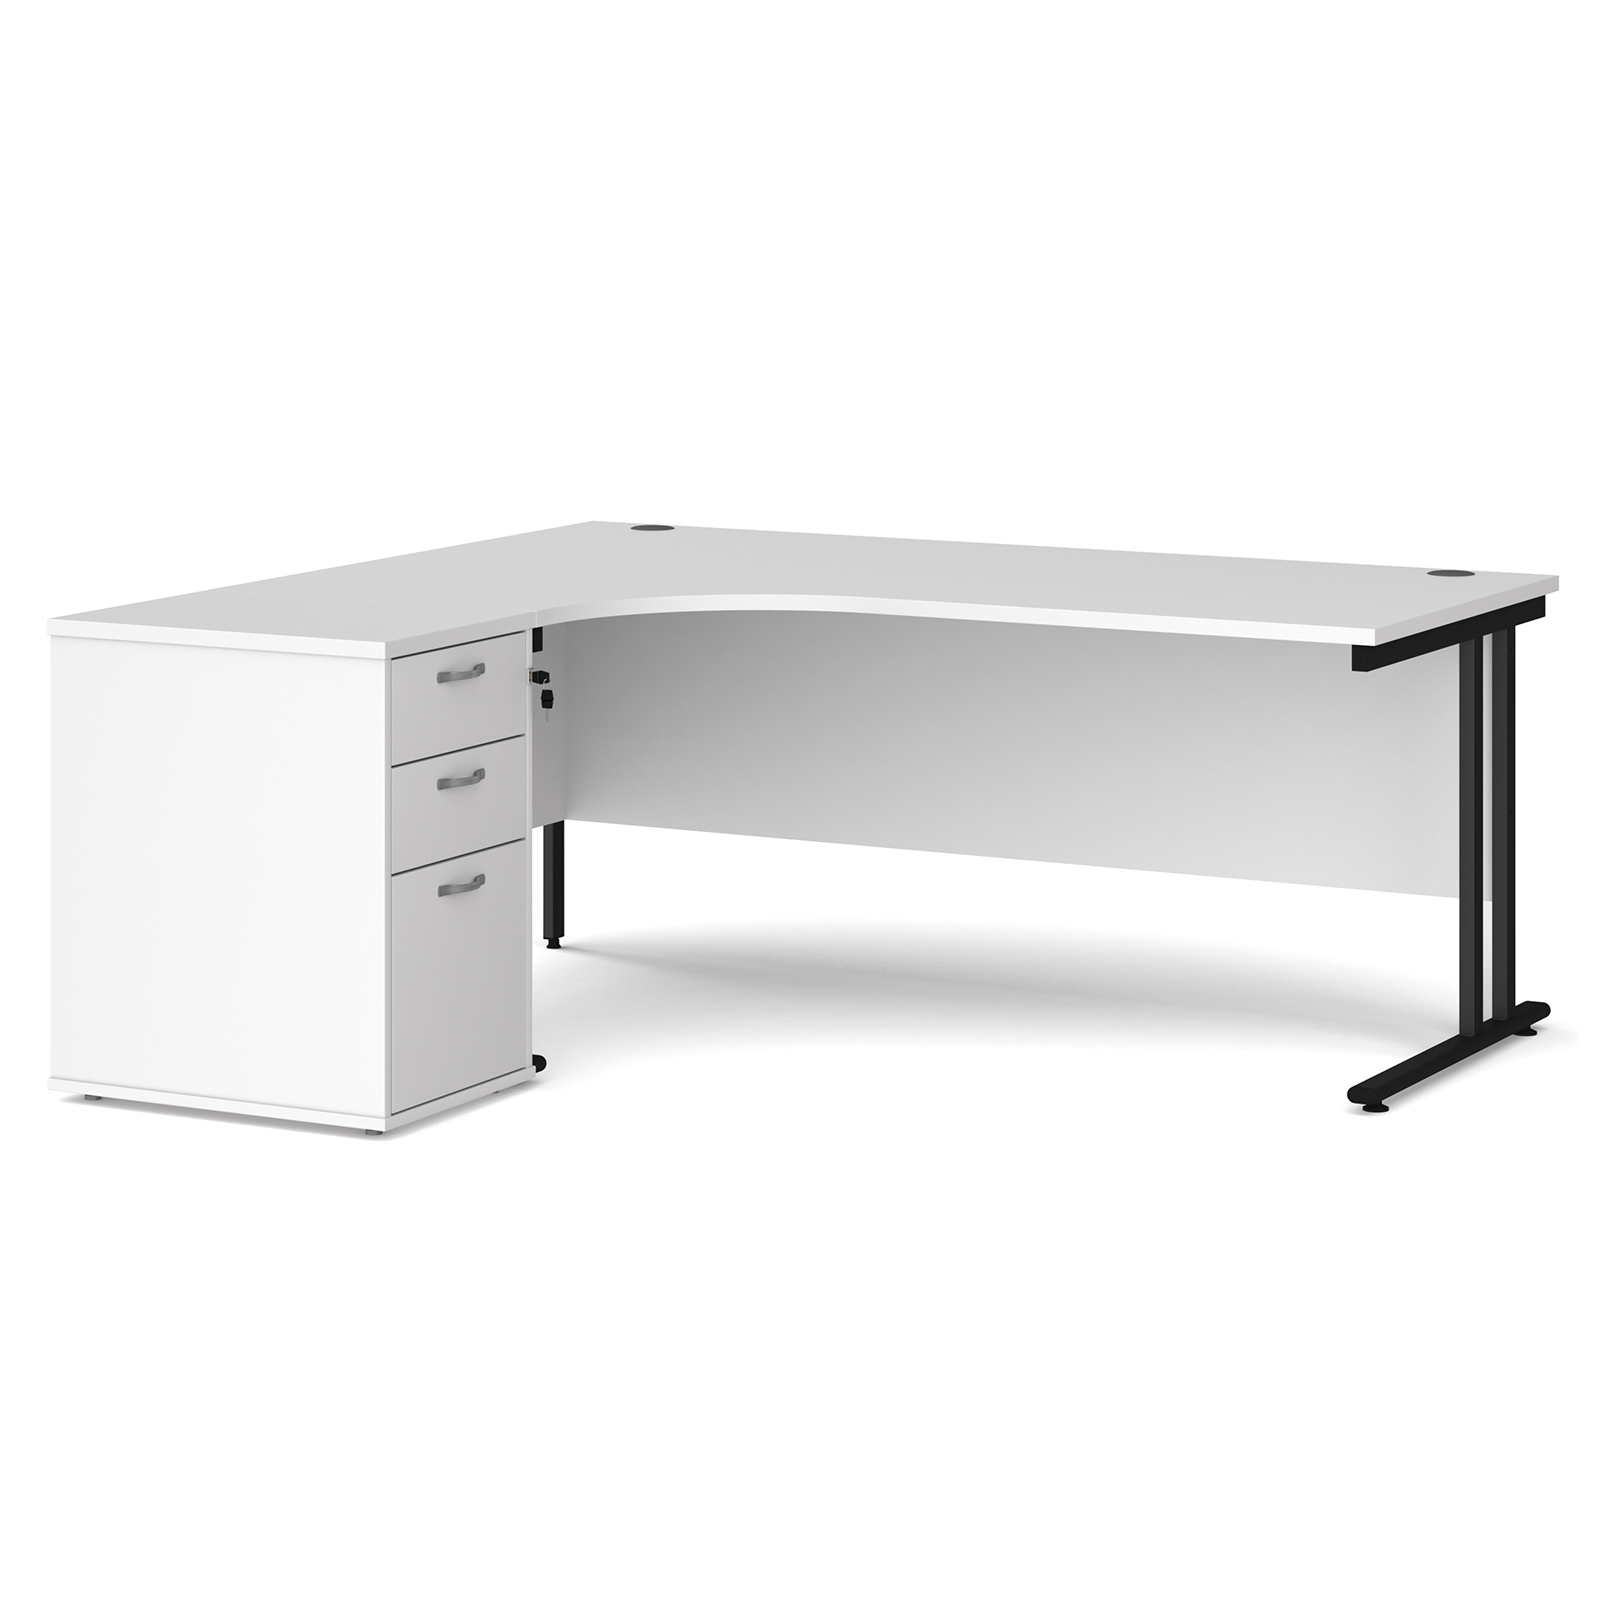 Left Handed Maestro 25 left hand ergonomic desk 1800mm with black cantilever frame and desk high pedestal - white